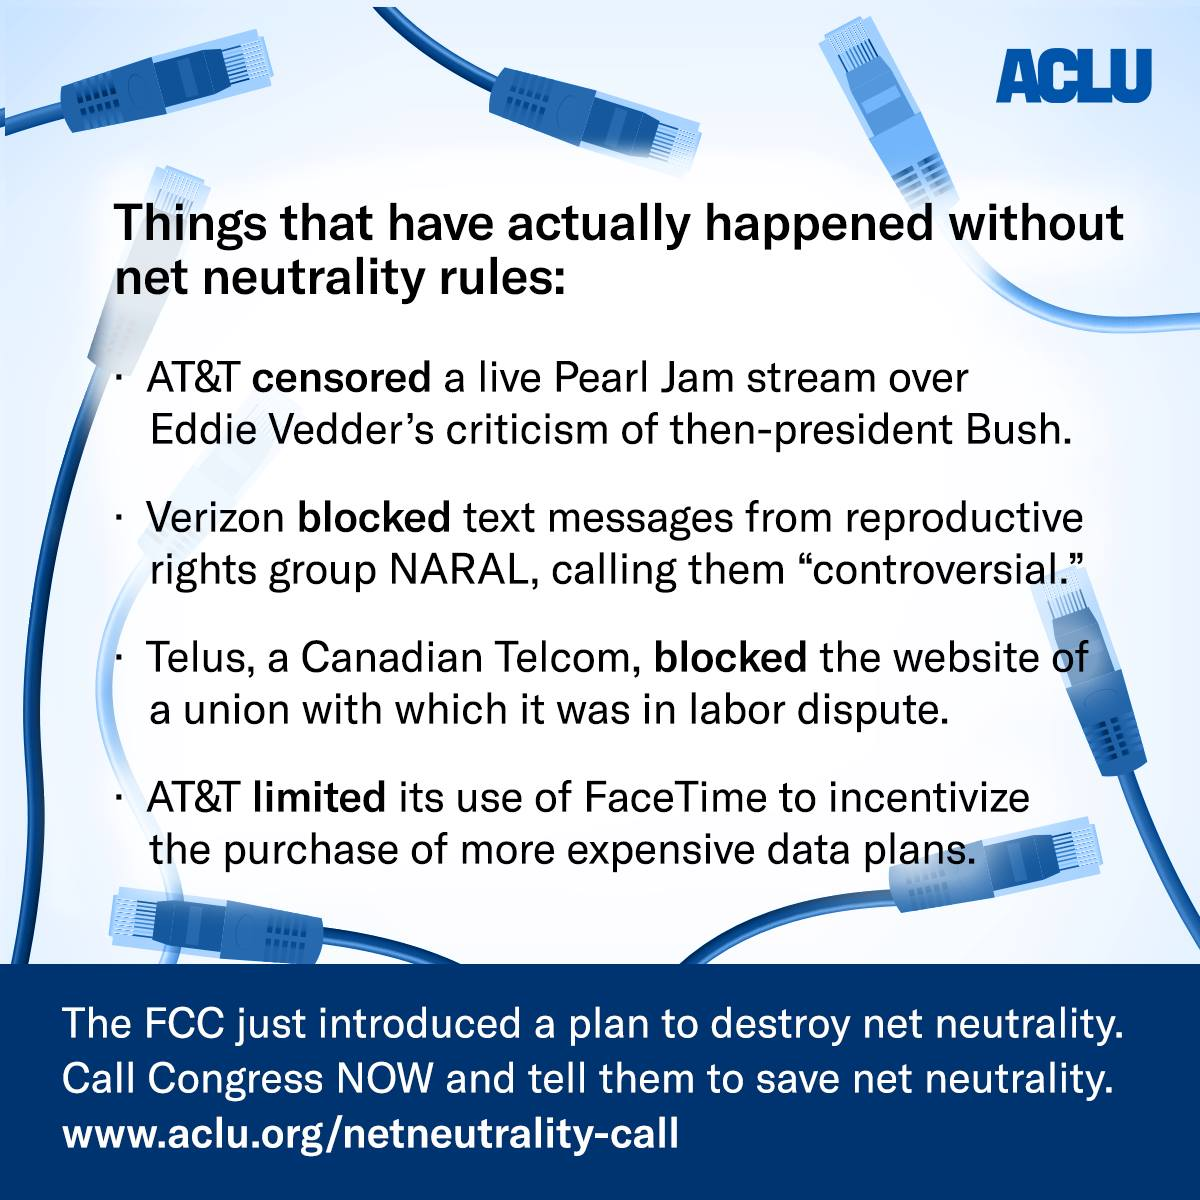 RT @ACLU: Here are some of the reasons we care that the FCC is about to vote whether or not to repeal #NetNeutrality https://t.co/fdjap1xGRL